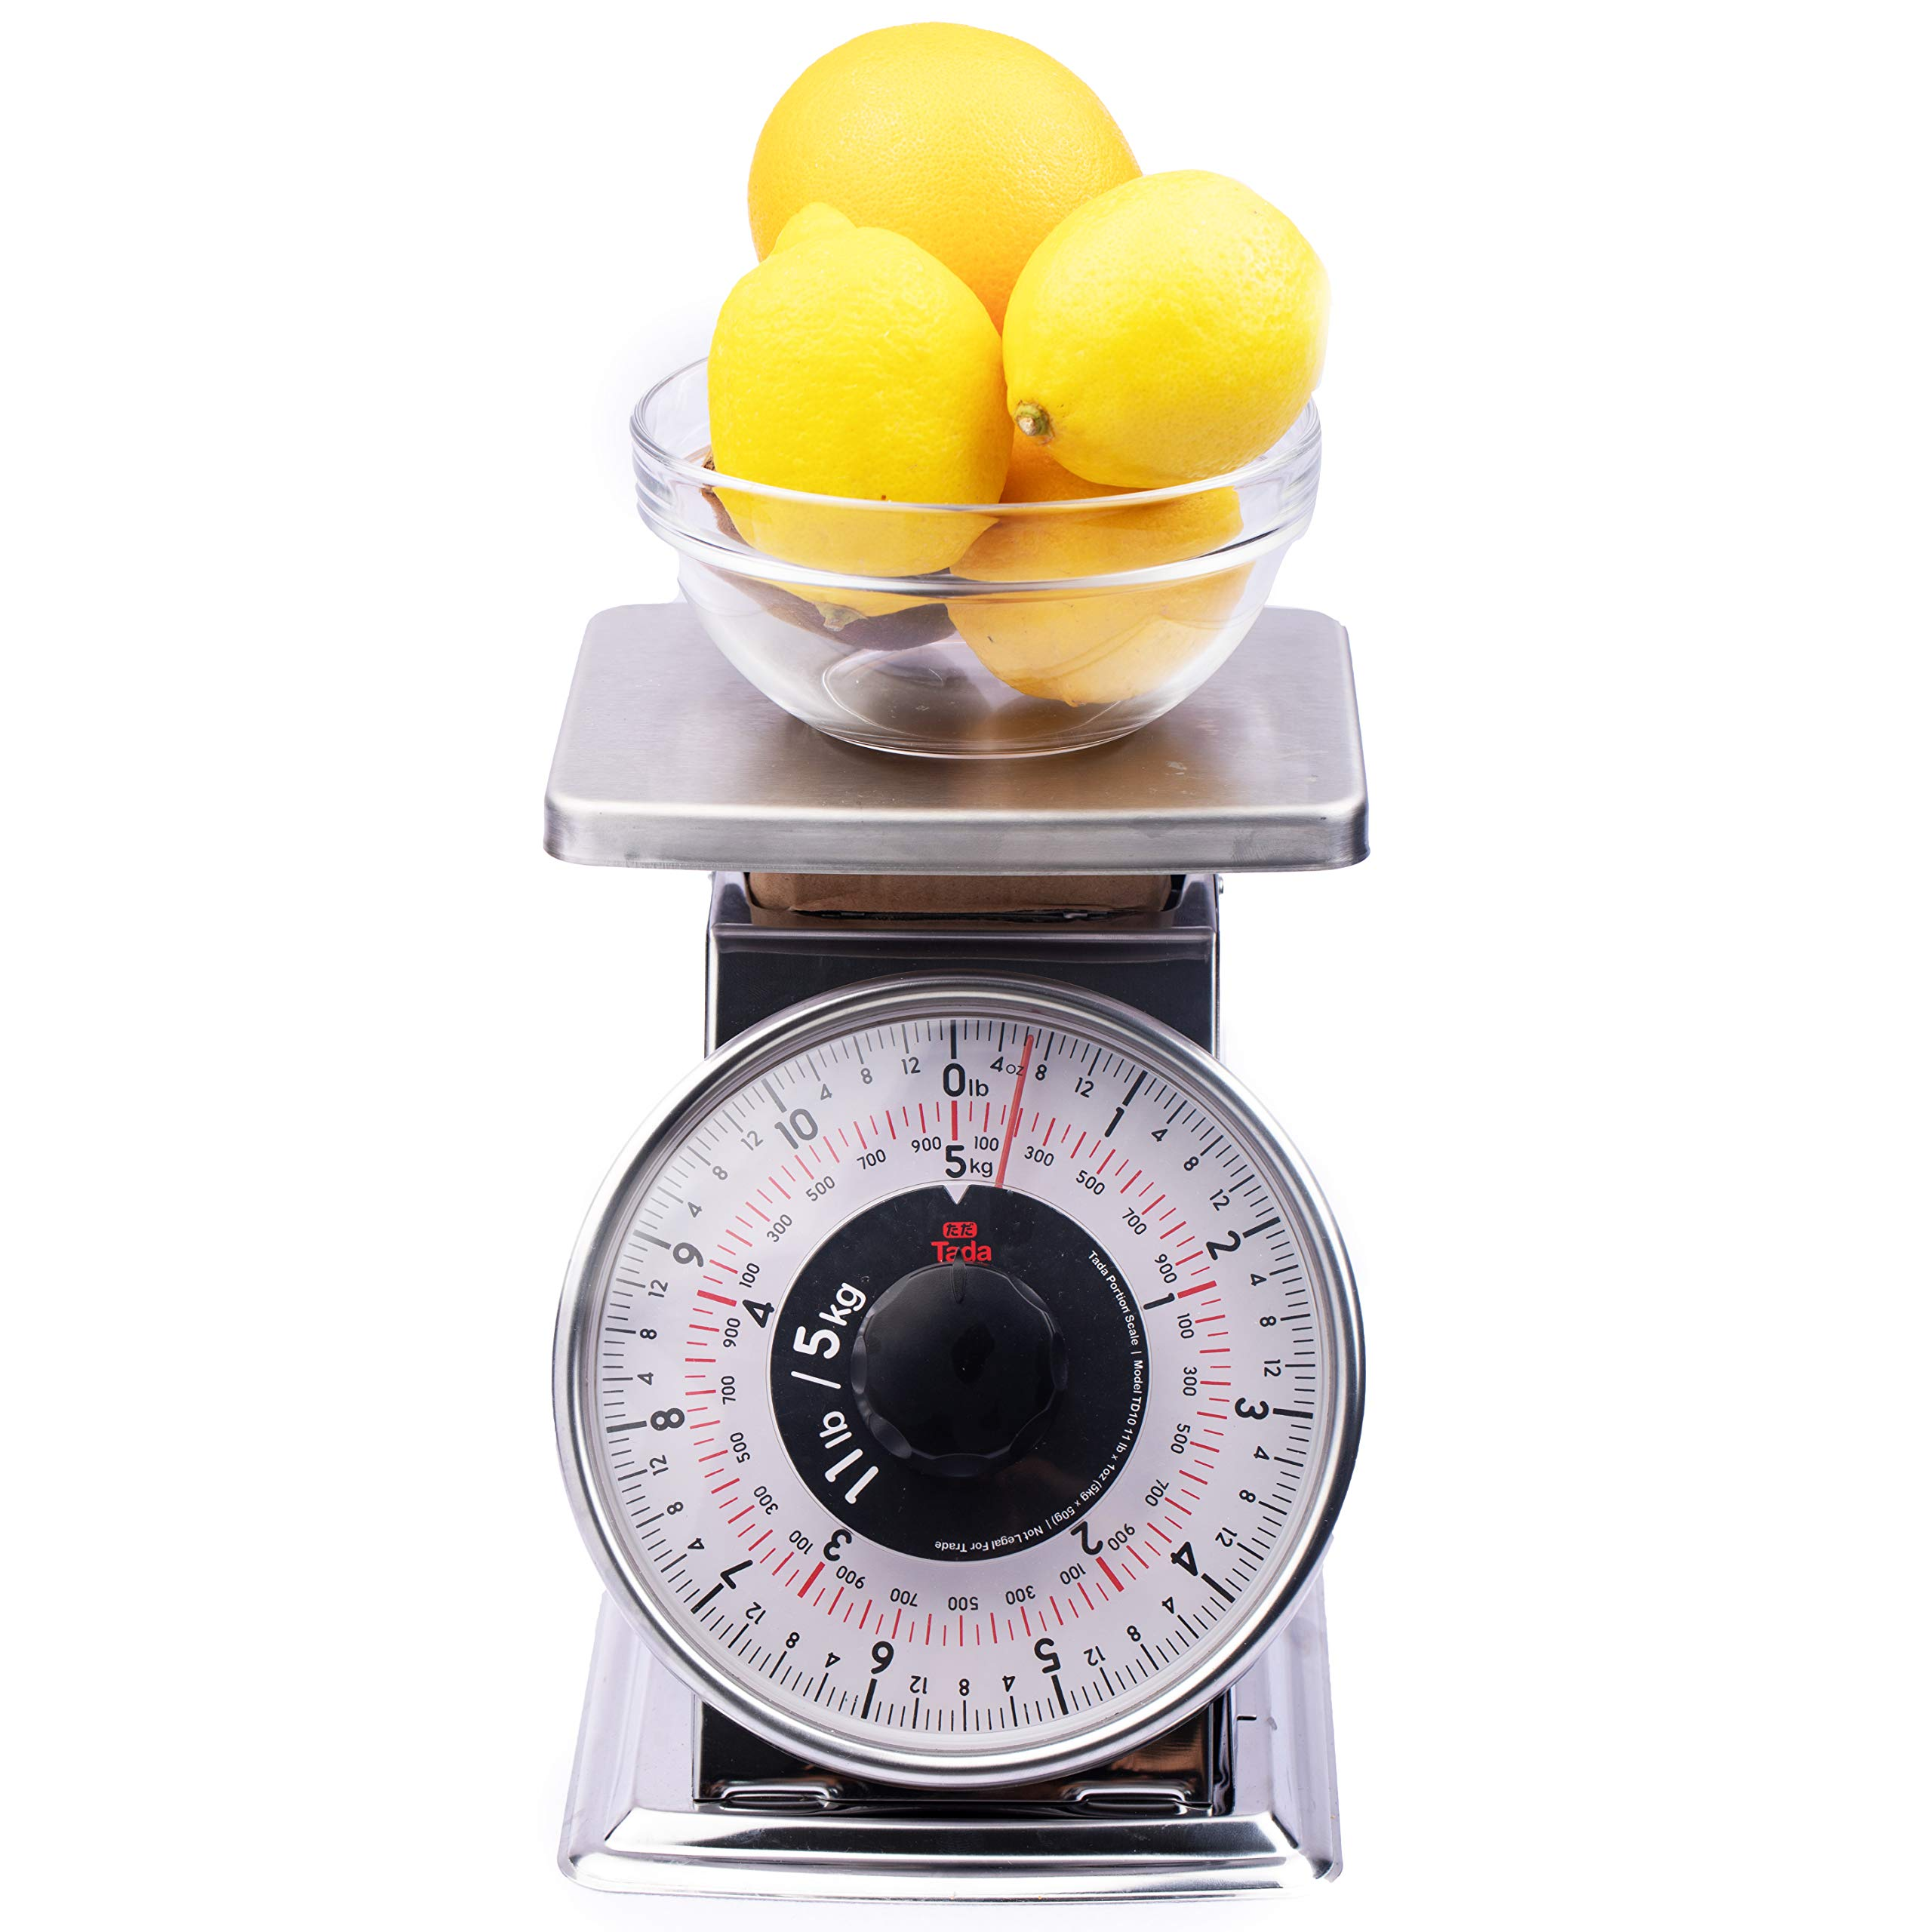 Tada Precise Portions Analog Food Scale (11 Pounds, Flat Top) - Stainless Steel, Removable Top, Tare Function, Retro Style, Kitchen Friendly by Tada